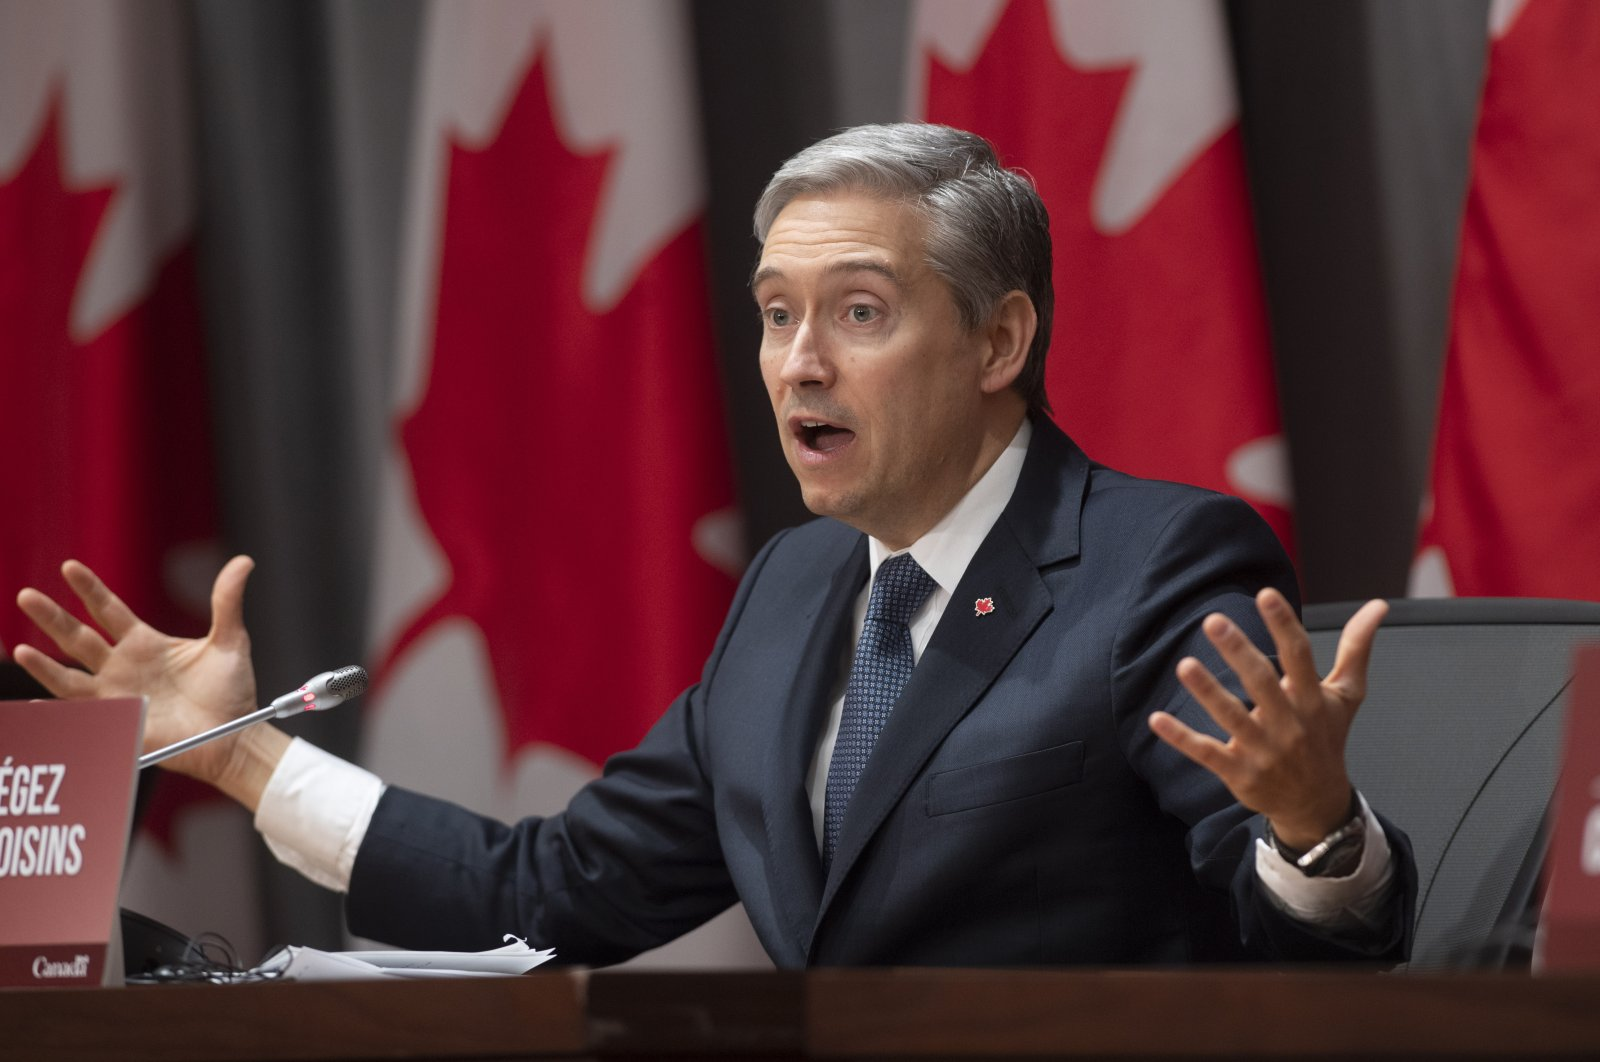 Foreign Affairs Minister Francois-Philippe Champagne gestures as he responds to a question at a news conference in Ottawa, Canada, April 2, 2020. (The Canadian Press via AP)